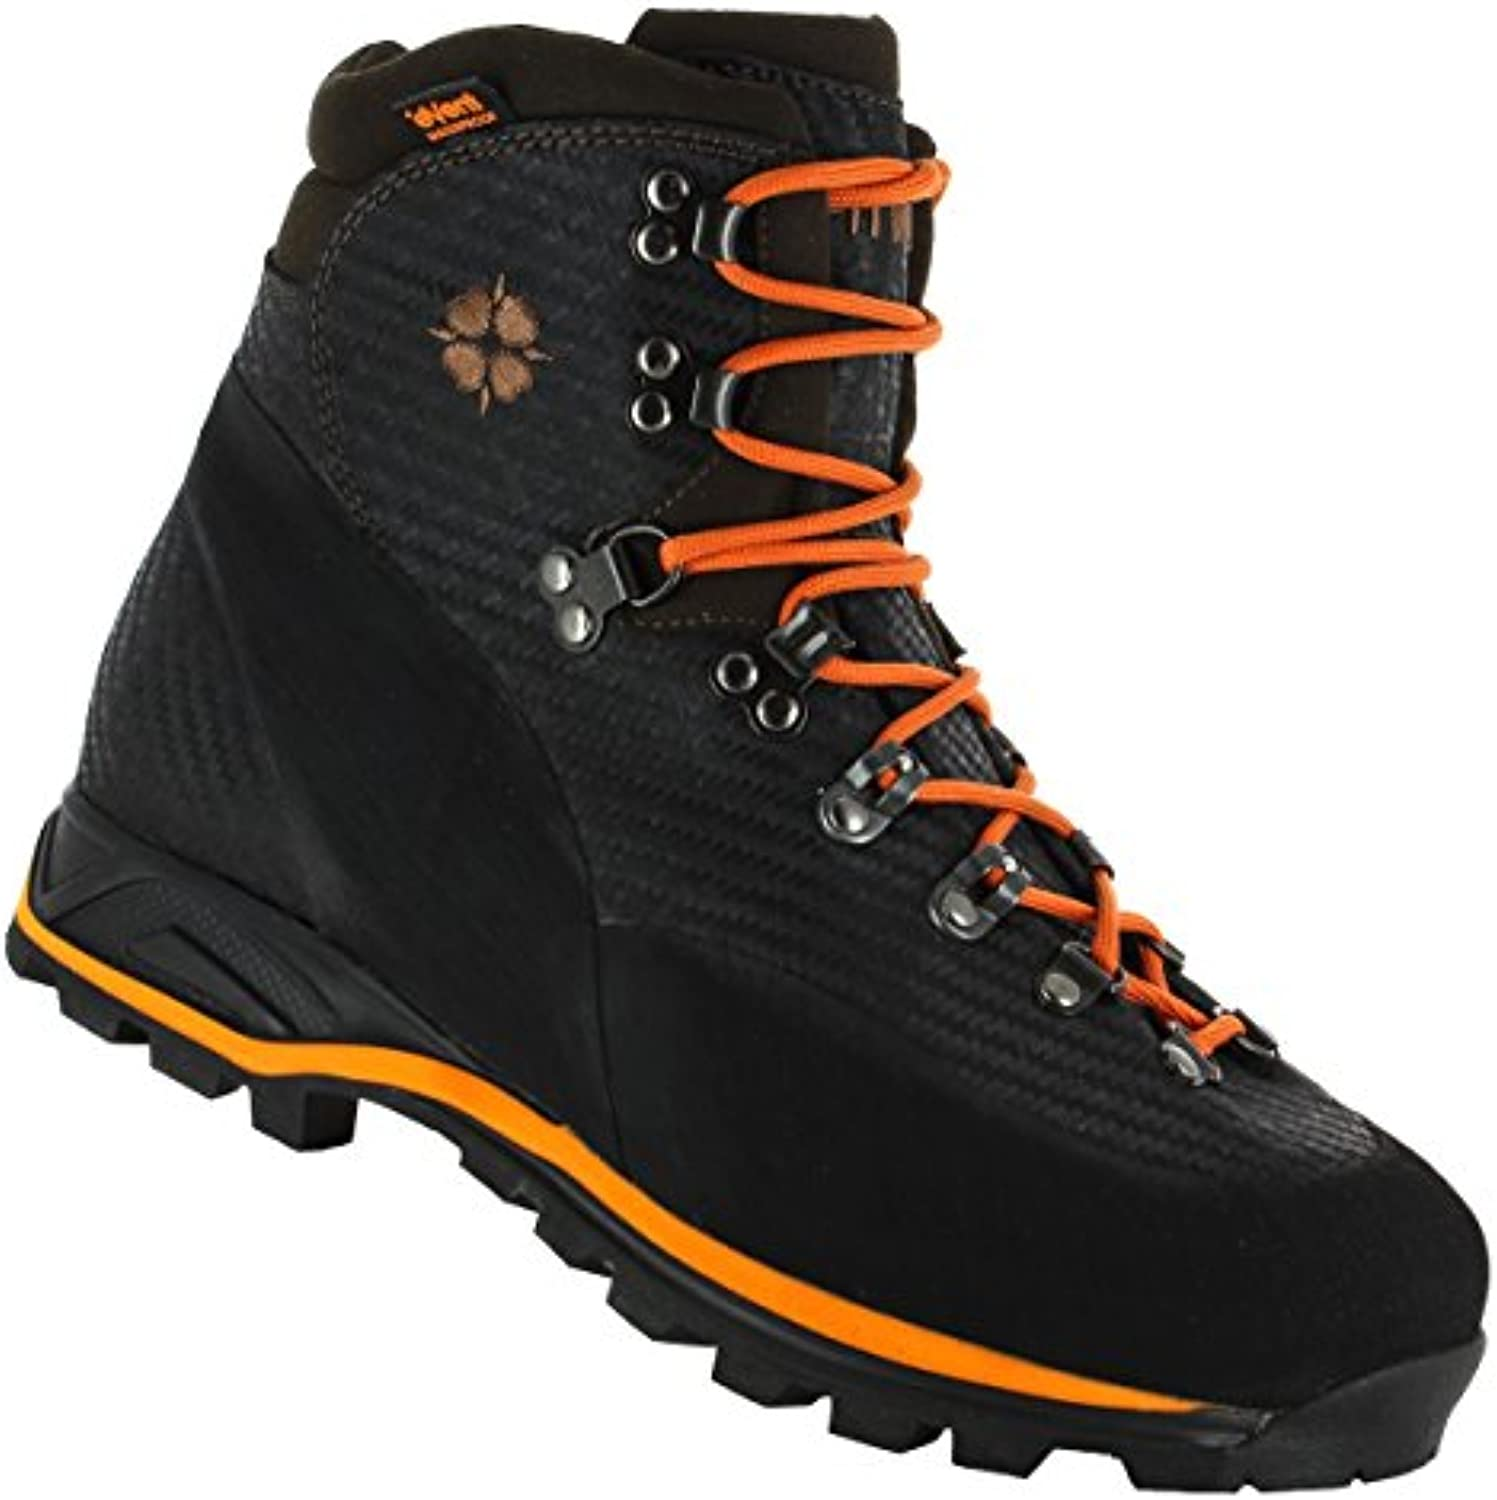 Winter Warm Storm Waterproof Outdoor and Trekkingstiefel Wanderstiefel Wanderschuhe